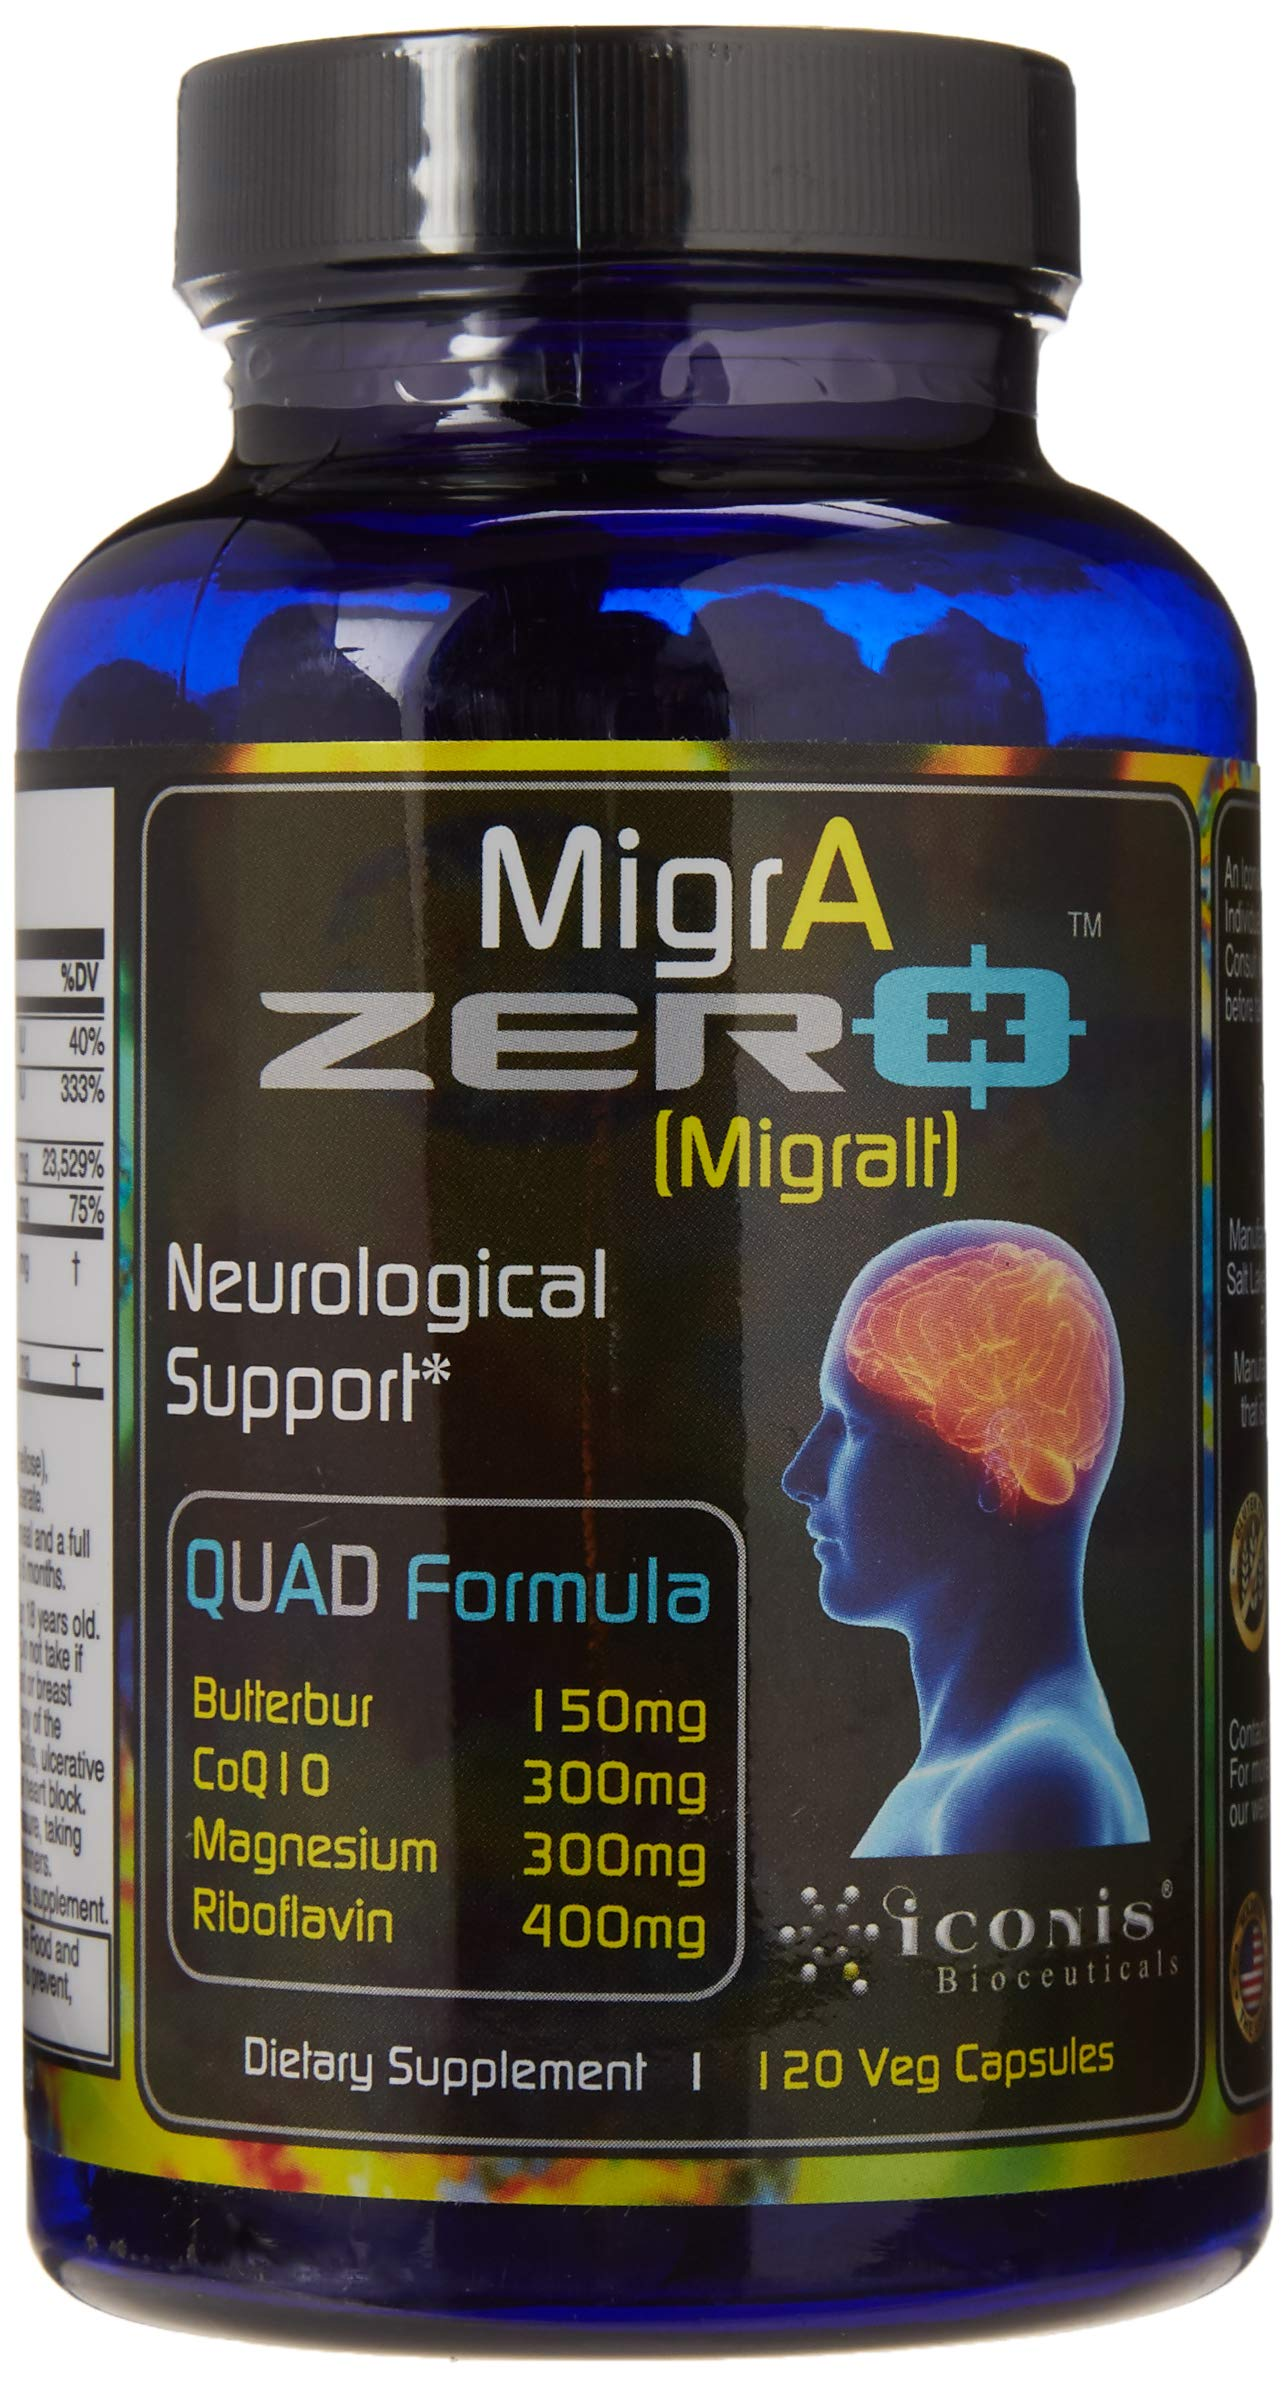 Migraine Relief, Quad-Formula with PA-Free Butterbur (150mg), CoQ10 (300mg), Magnesium Glycinate (300mg), High-Dose Riboflavin (400mg) - MigrA Zero (120 Caps) Optimal Dosing for Migraine Sufferers by Iconis Bioceuticals